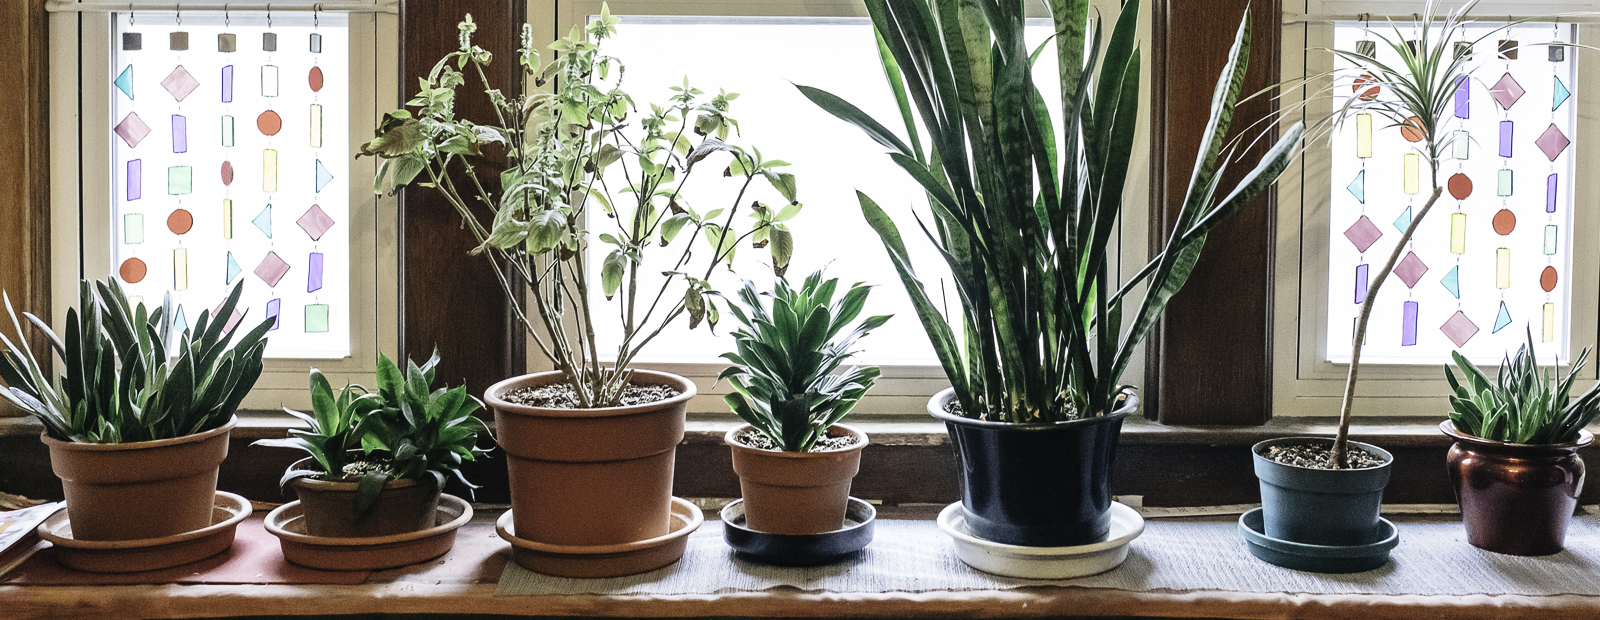 CJ Drenth has a house brimming with plants and seed catalogues. <span class='image-credits'> Eric Hennig, VAGUE photography</span>